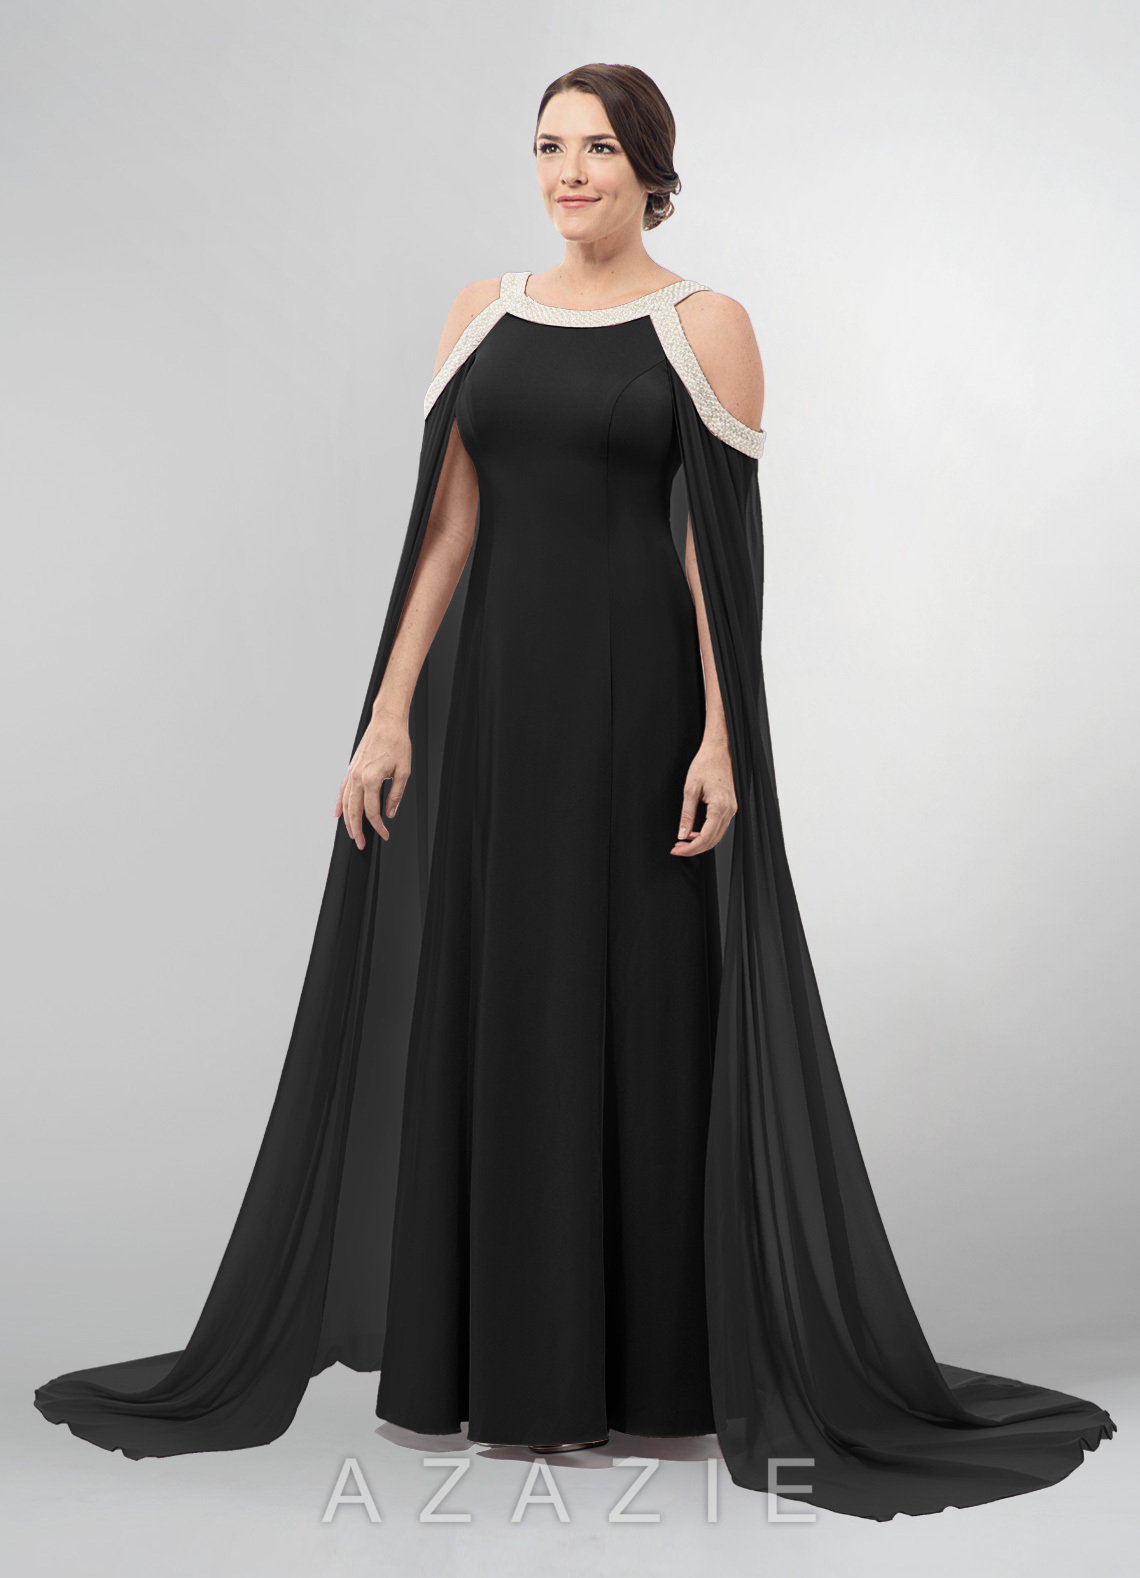 582a6f5ca0 Azazie Laura MBD Mother Of The Bride Dress